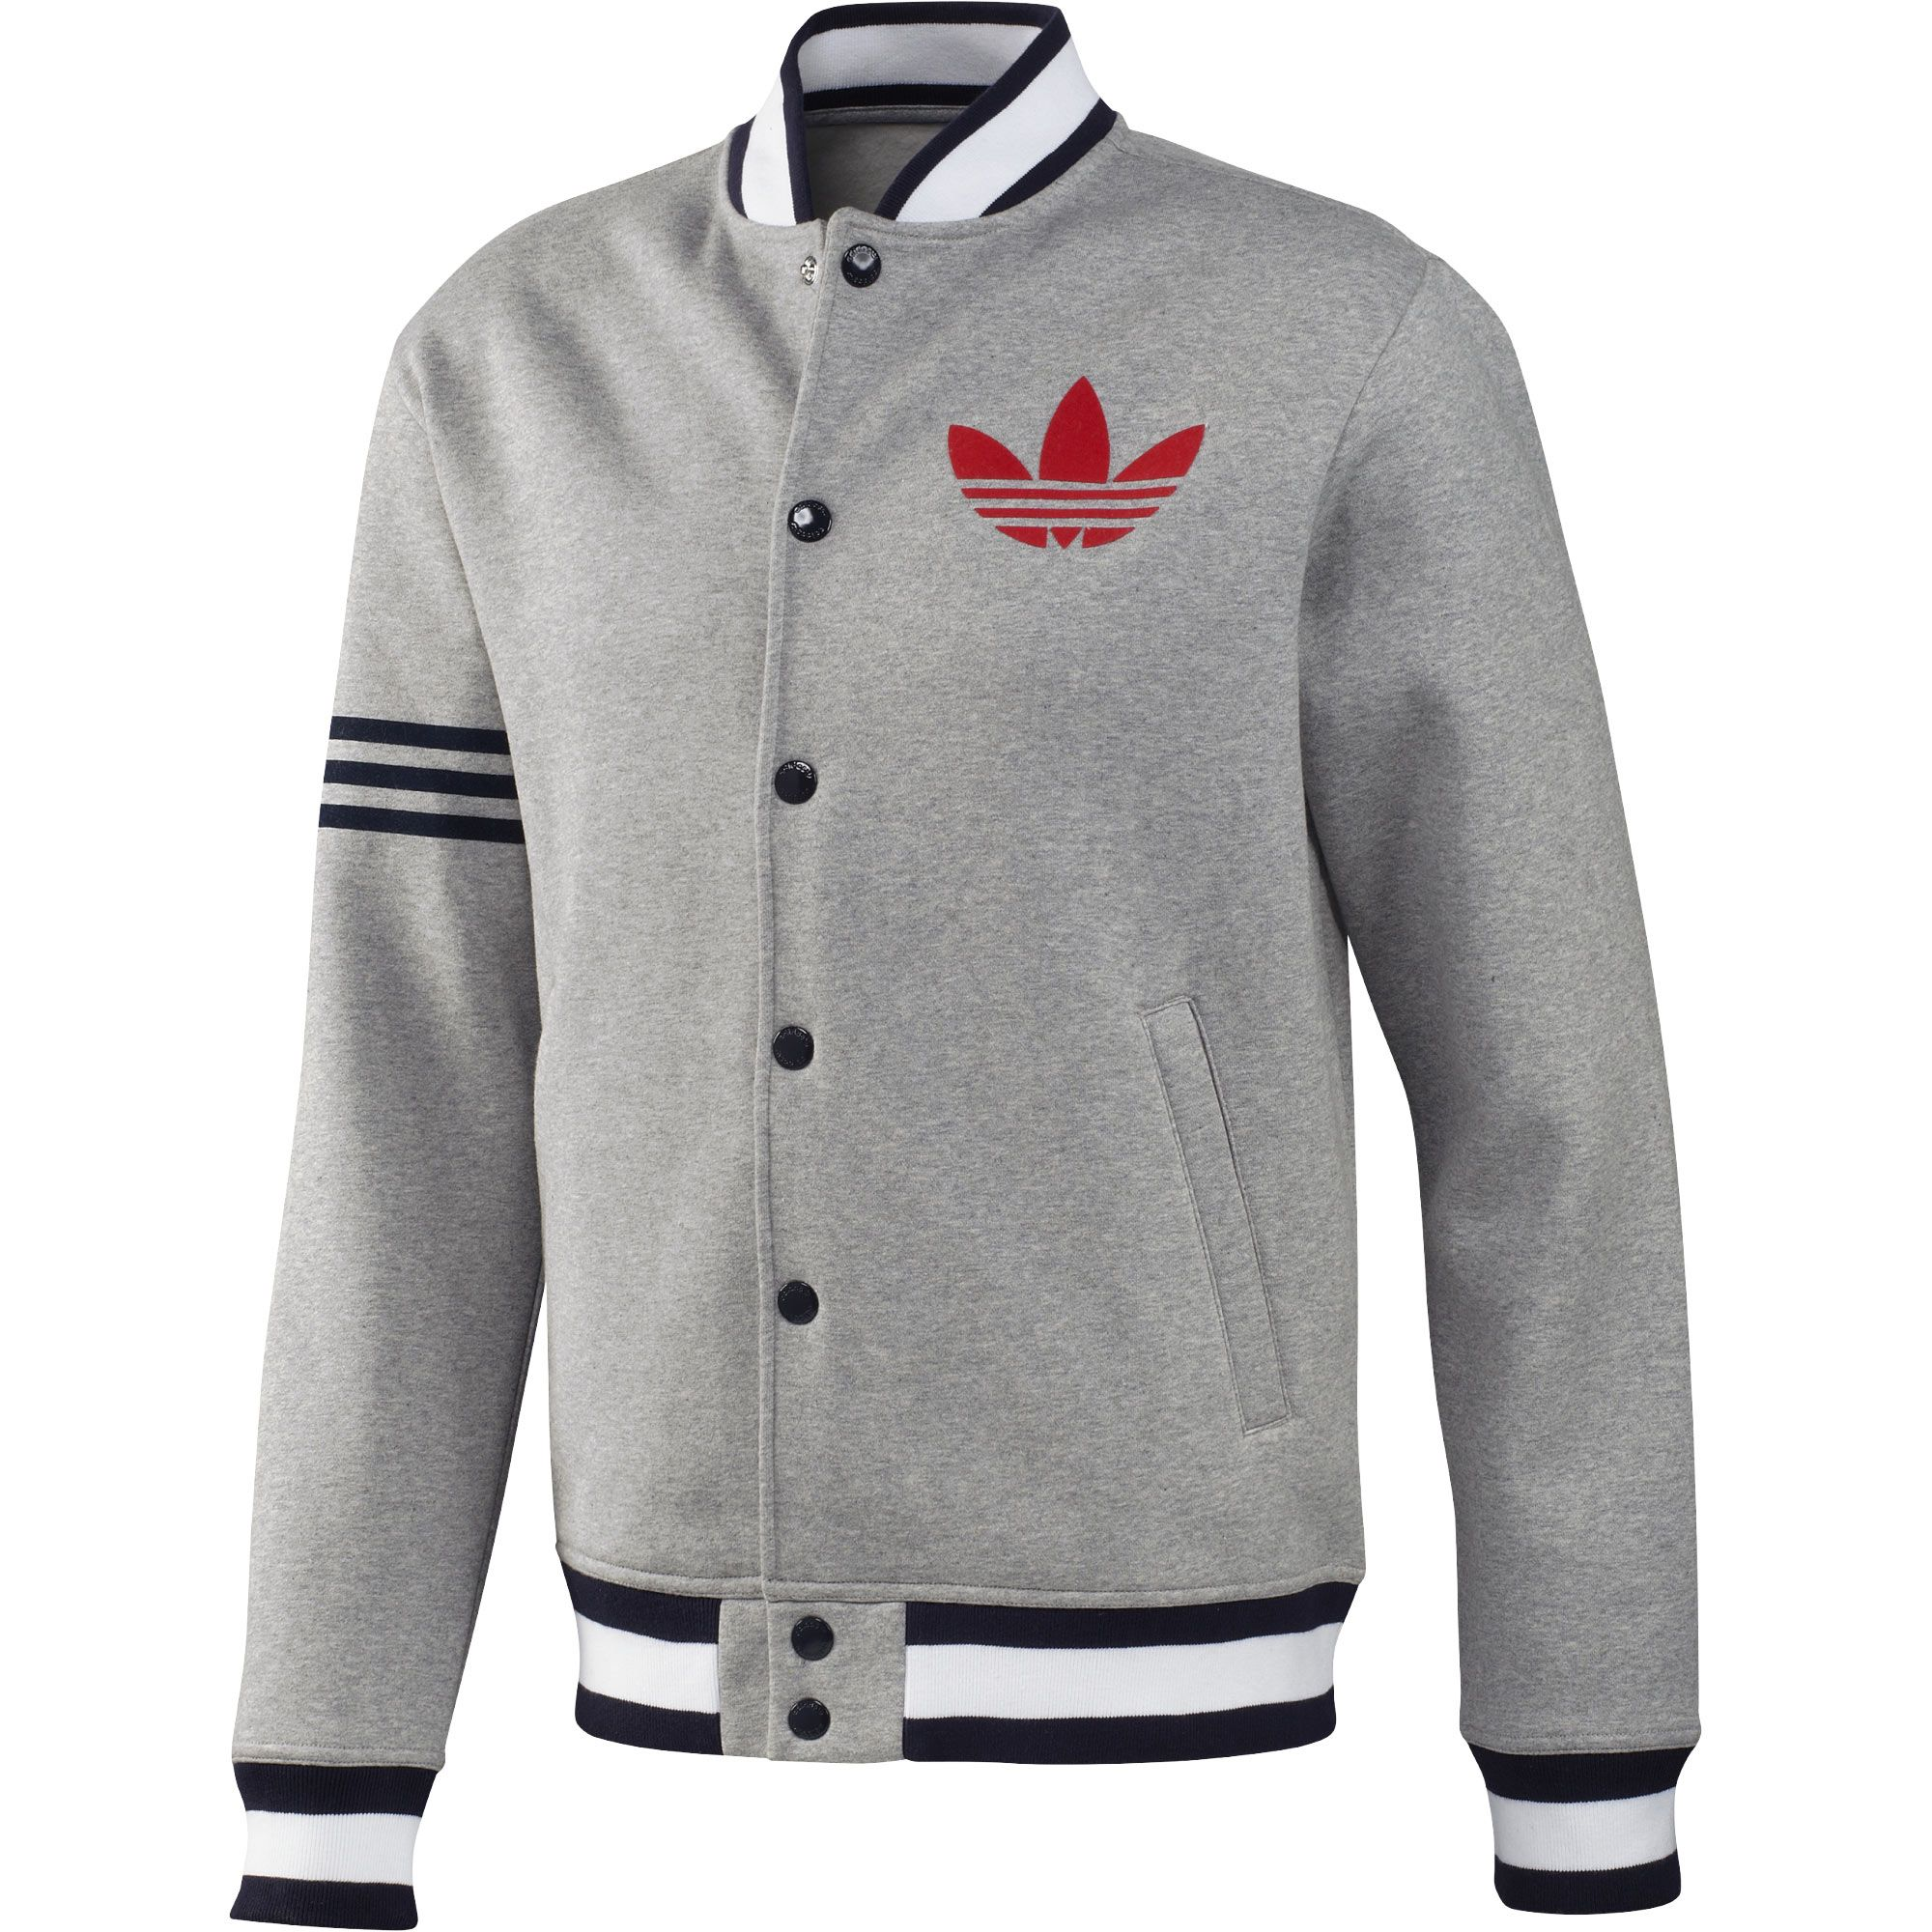 Adidas Menu0026#39;s Superstar Fleece Remix Jacket | Adidas Canada | Fashion | Pinterest | Adidas ...